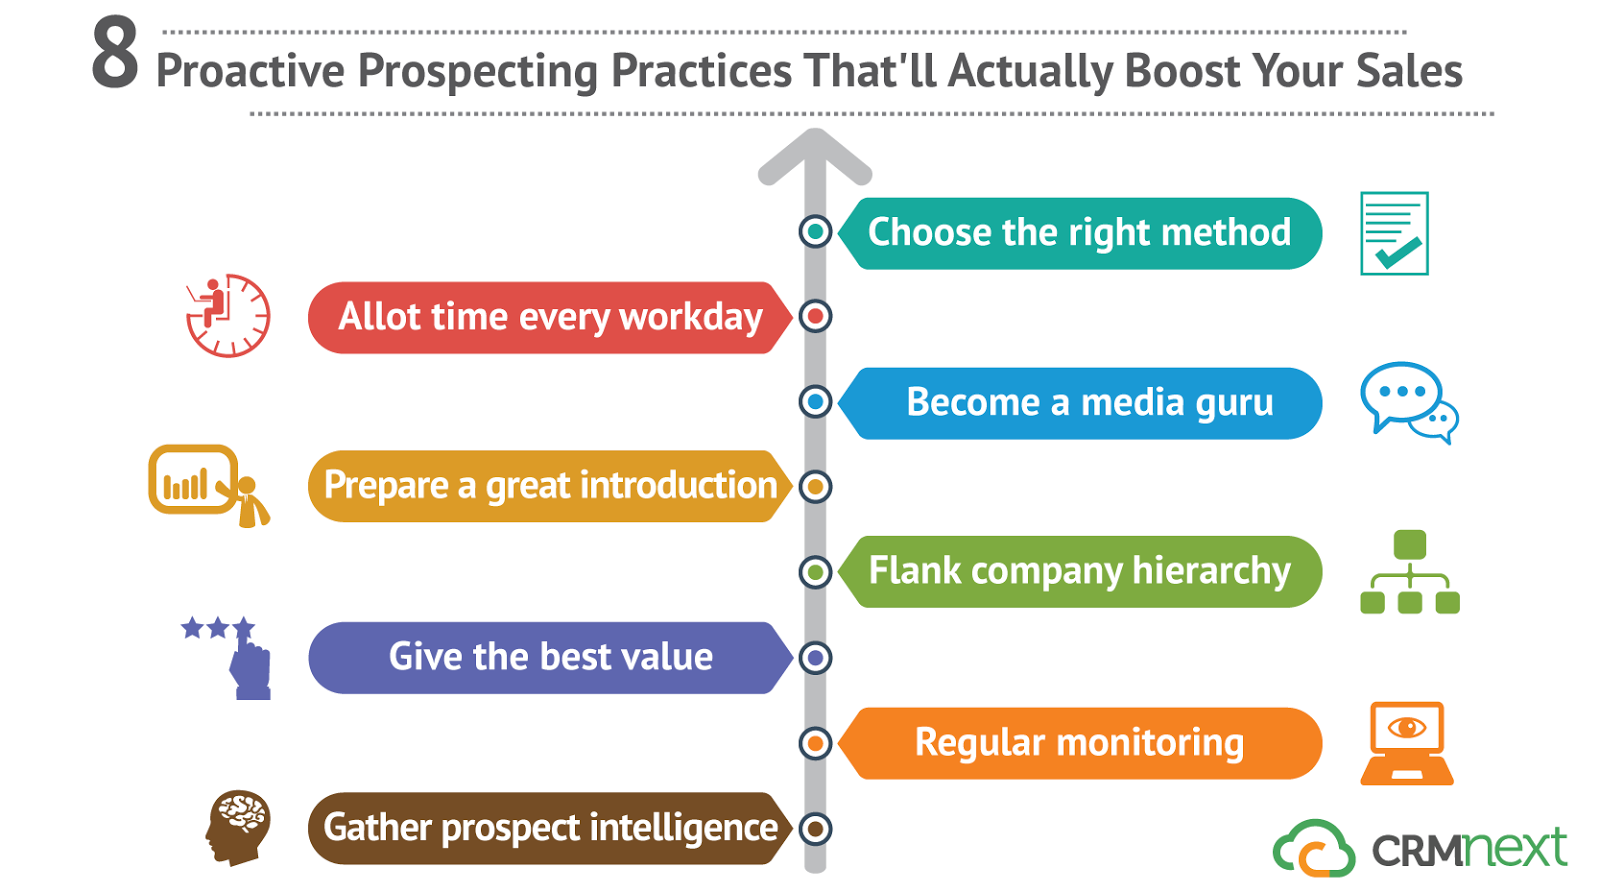 8 Proactive Prospecting Practices That'll Actually Boost Your Sales